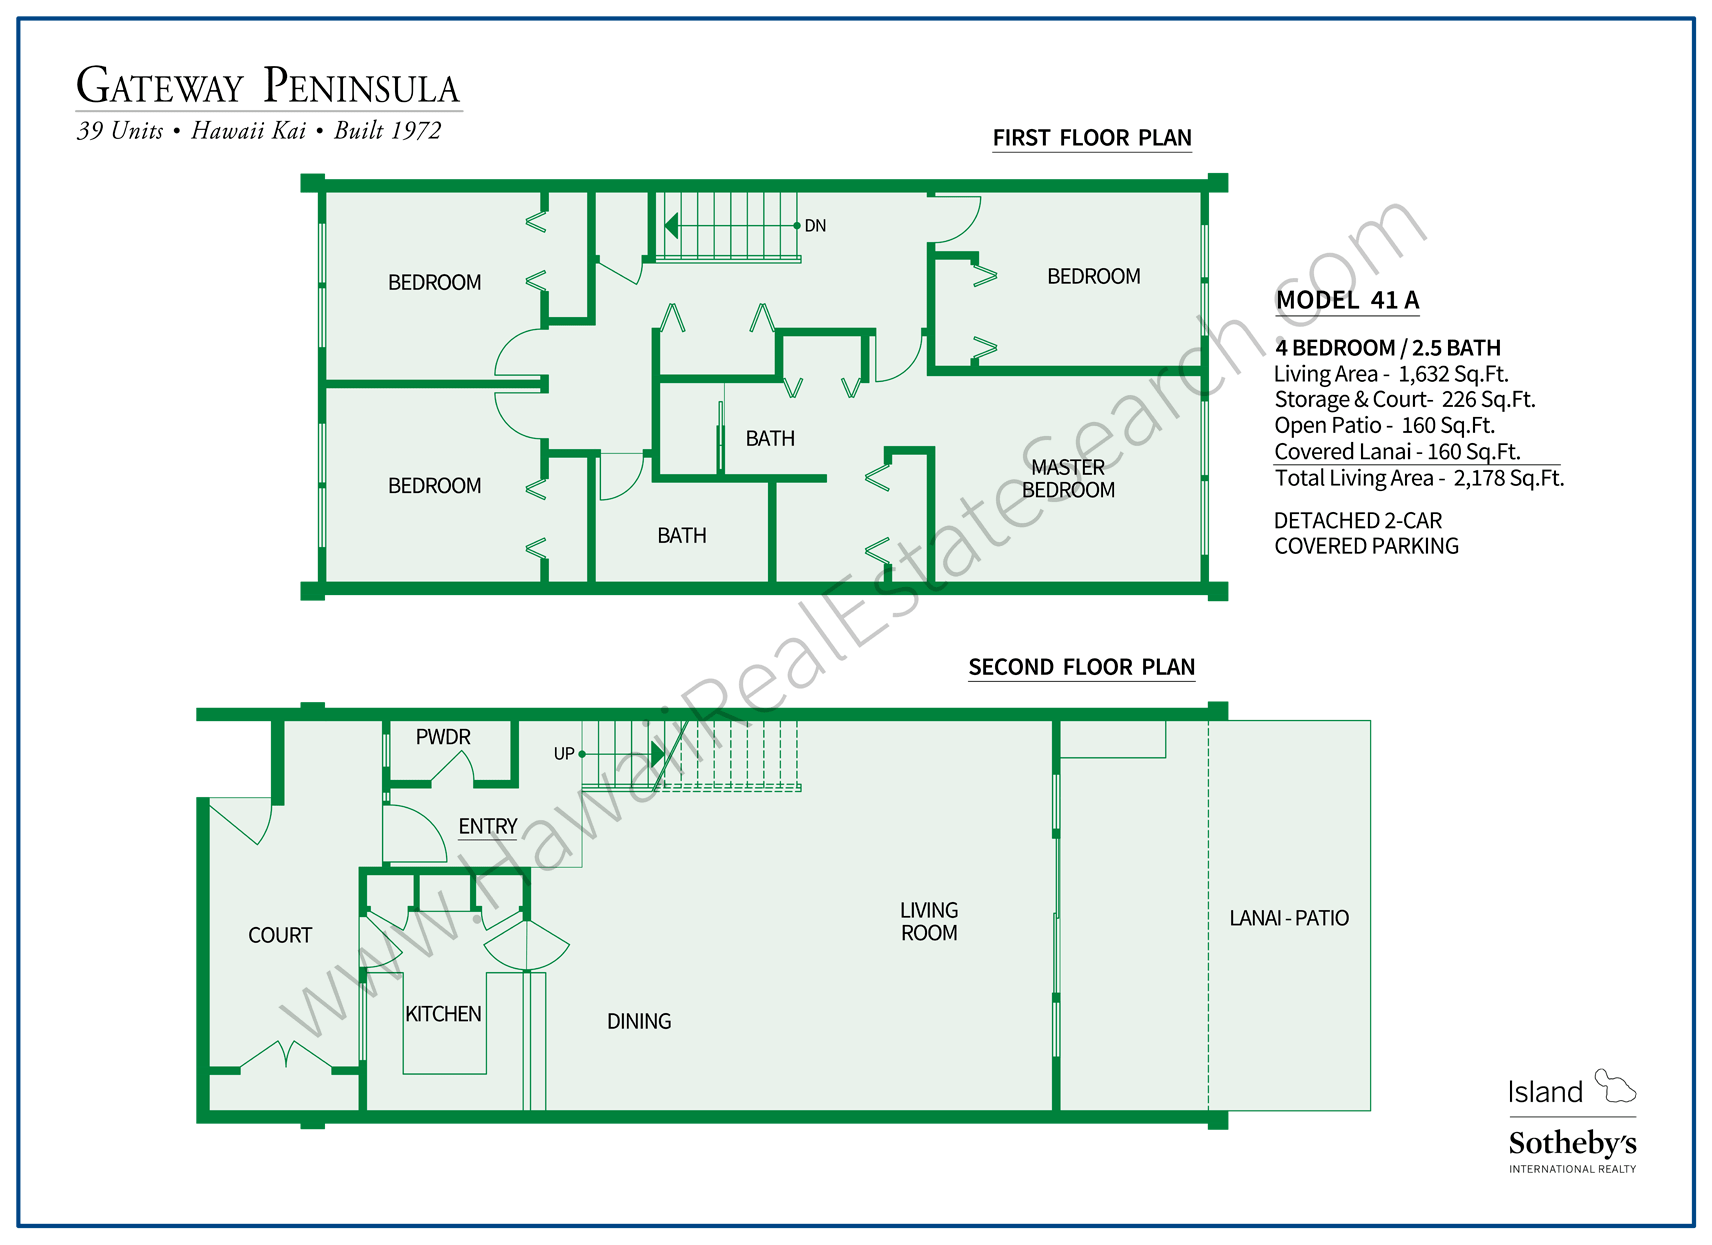 Gateway Peninsula Floor Plan at Hawaii Kai